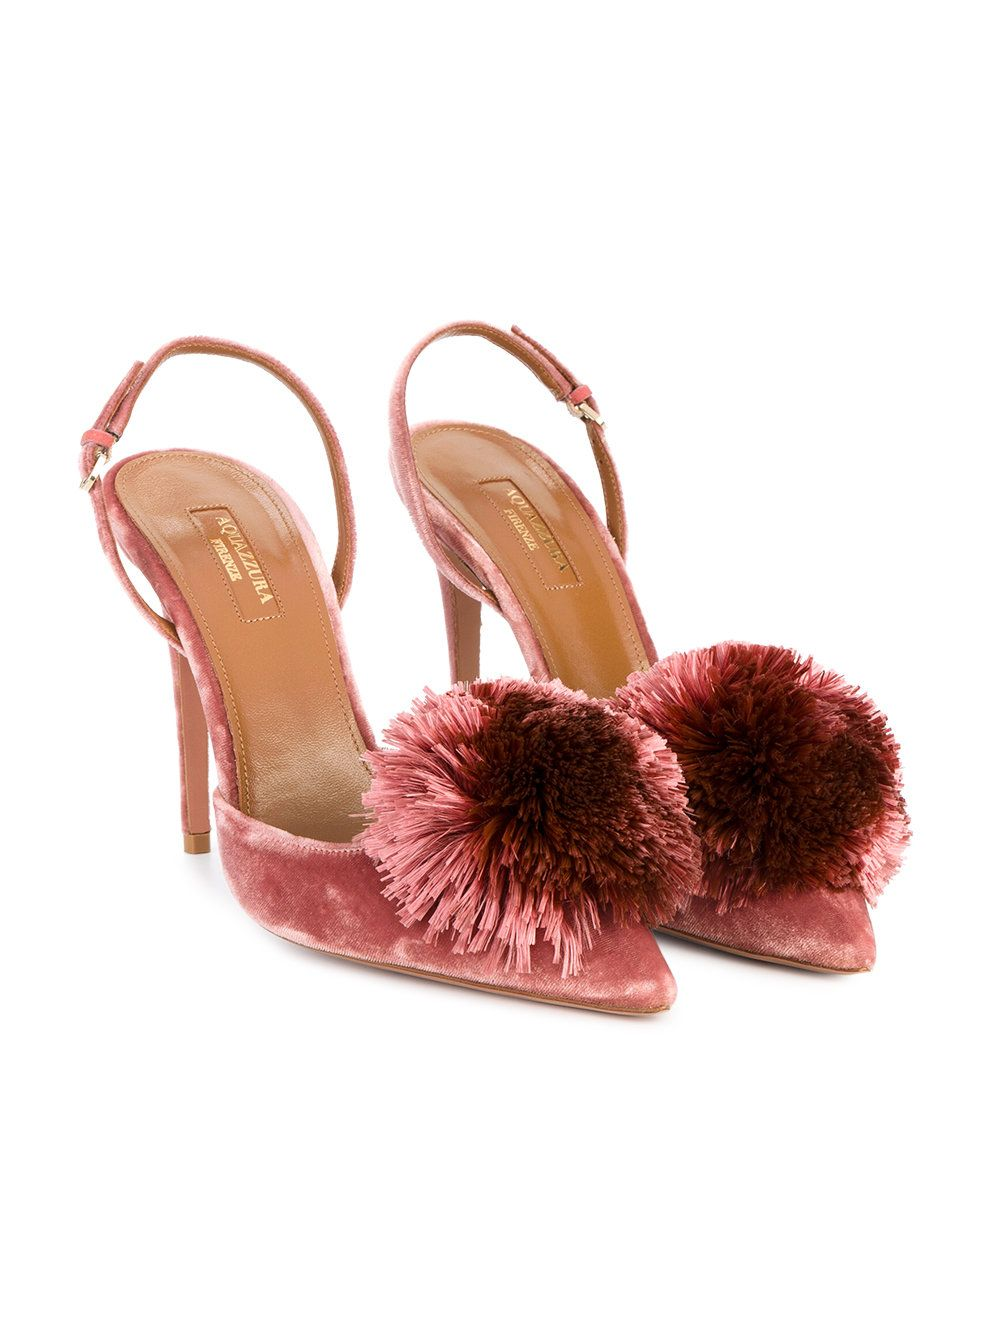 7bc61944e5 Aquazzura Powder Puff slingback heels | clothes | Velvet shoes ...